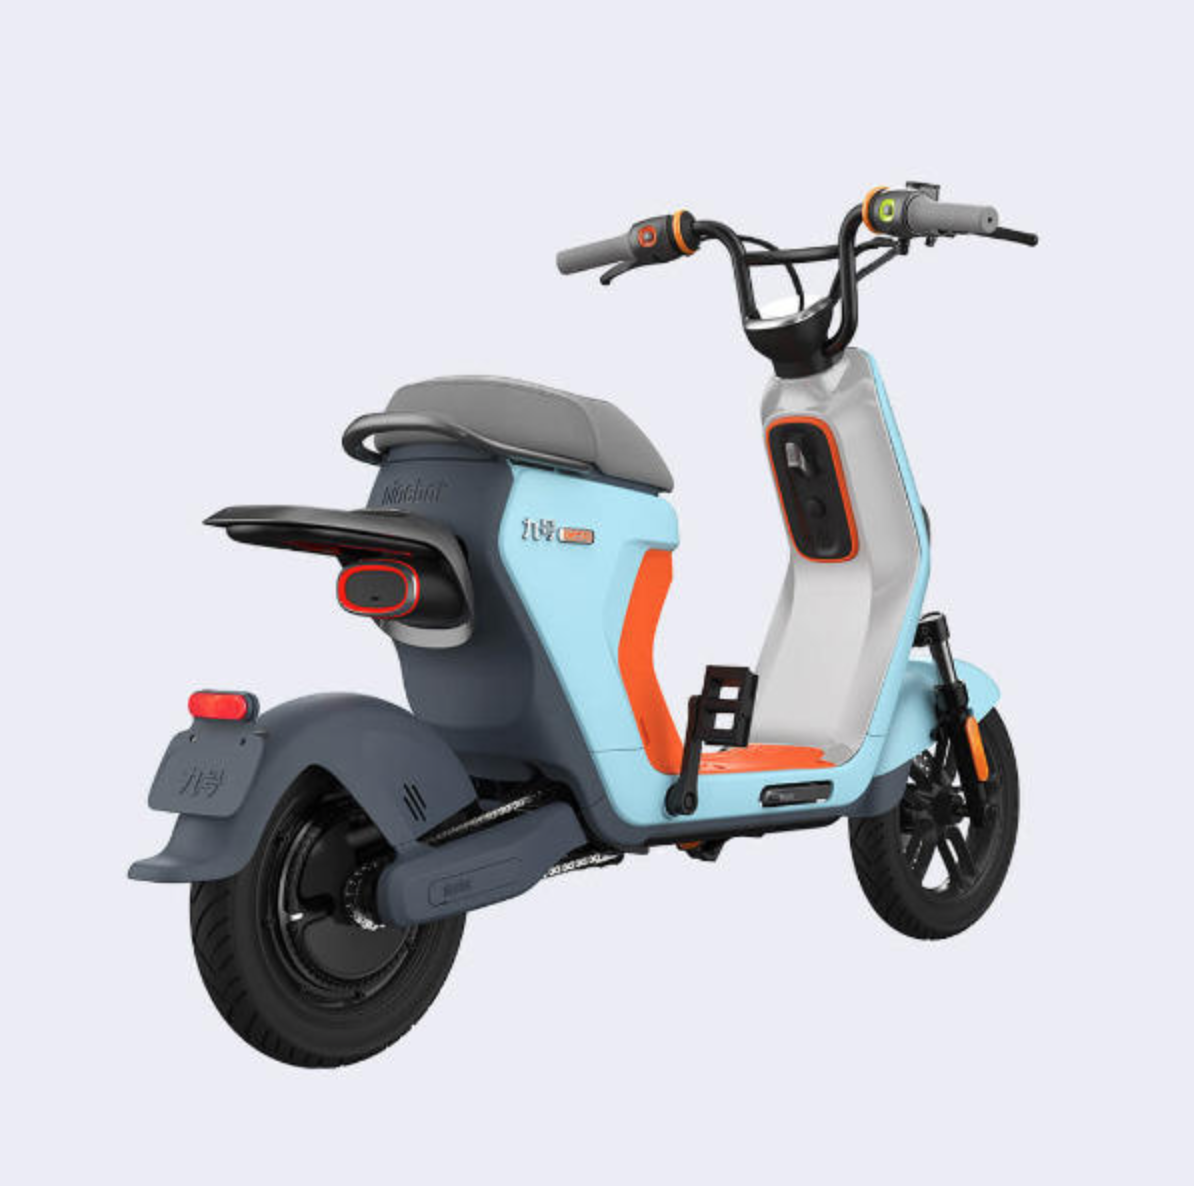 Best Chinese electric scooter 2020